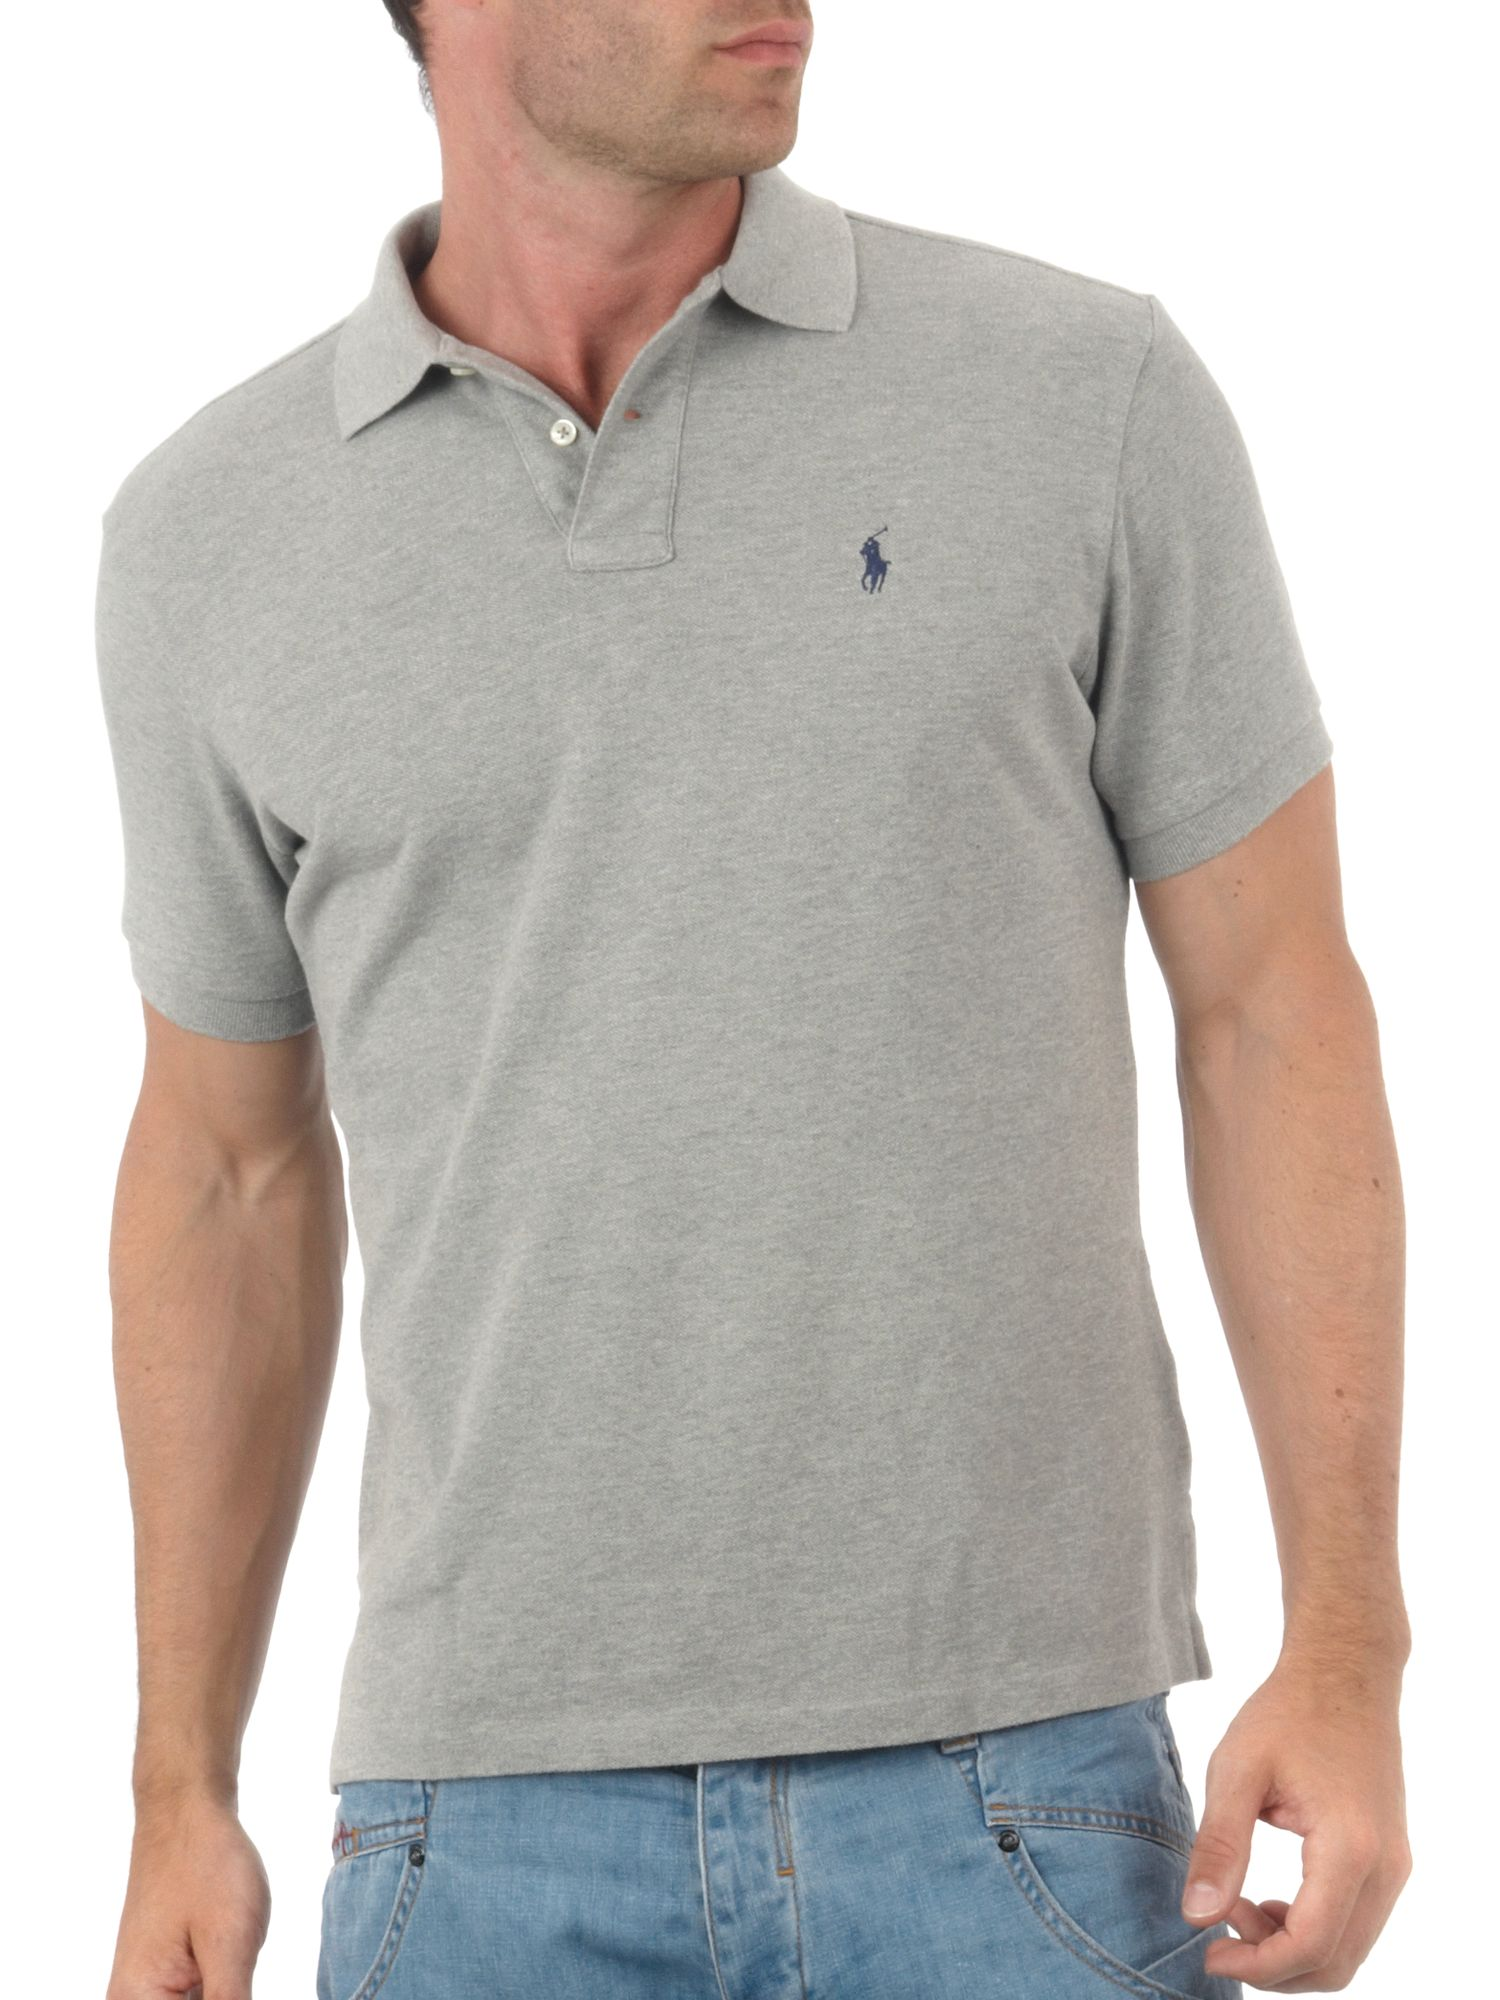 Custom fit polo shirt